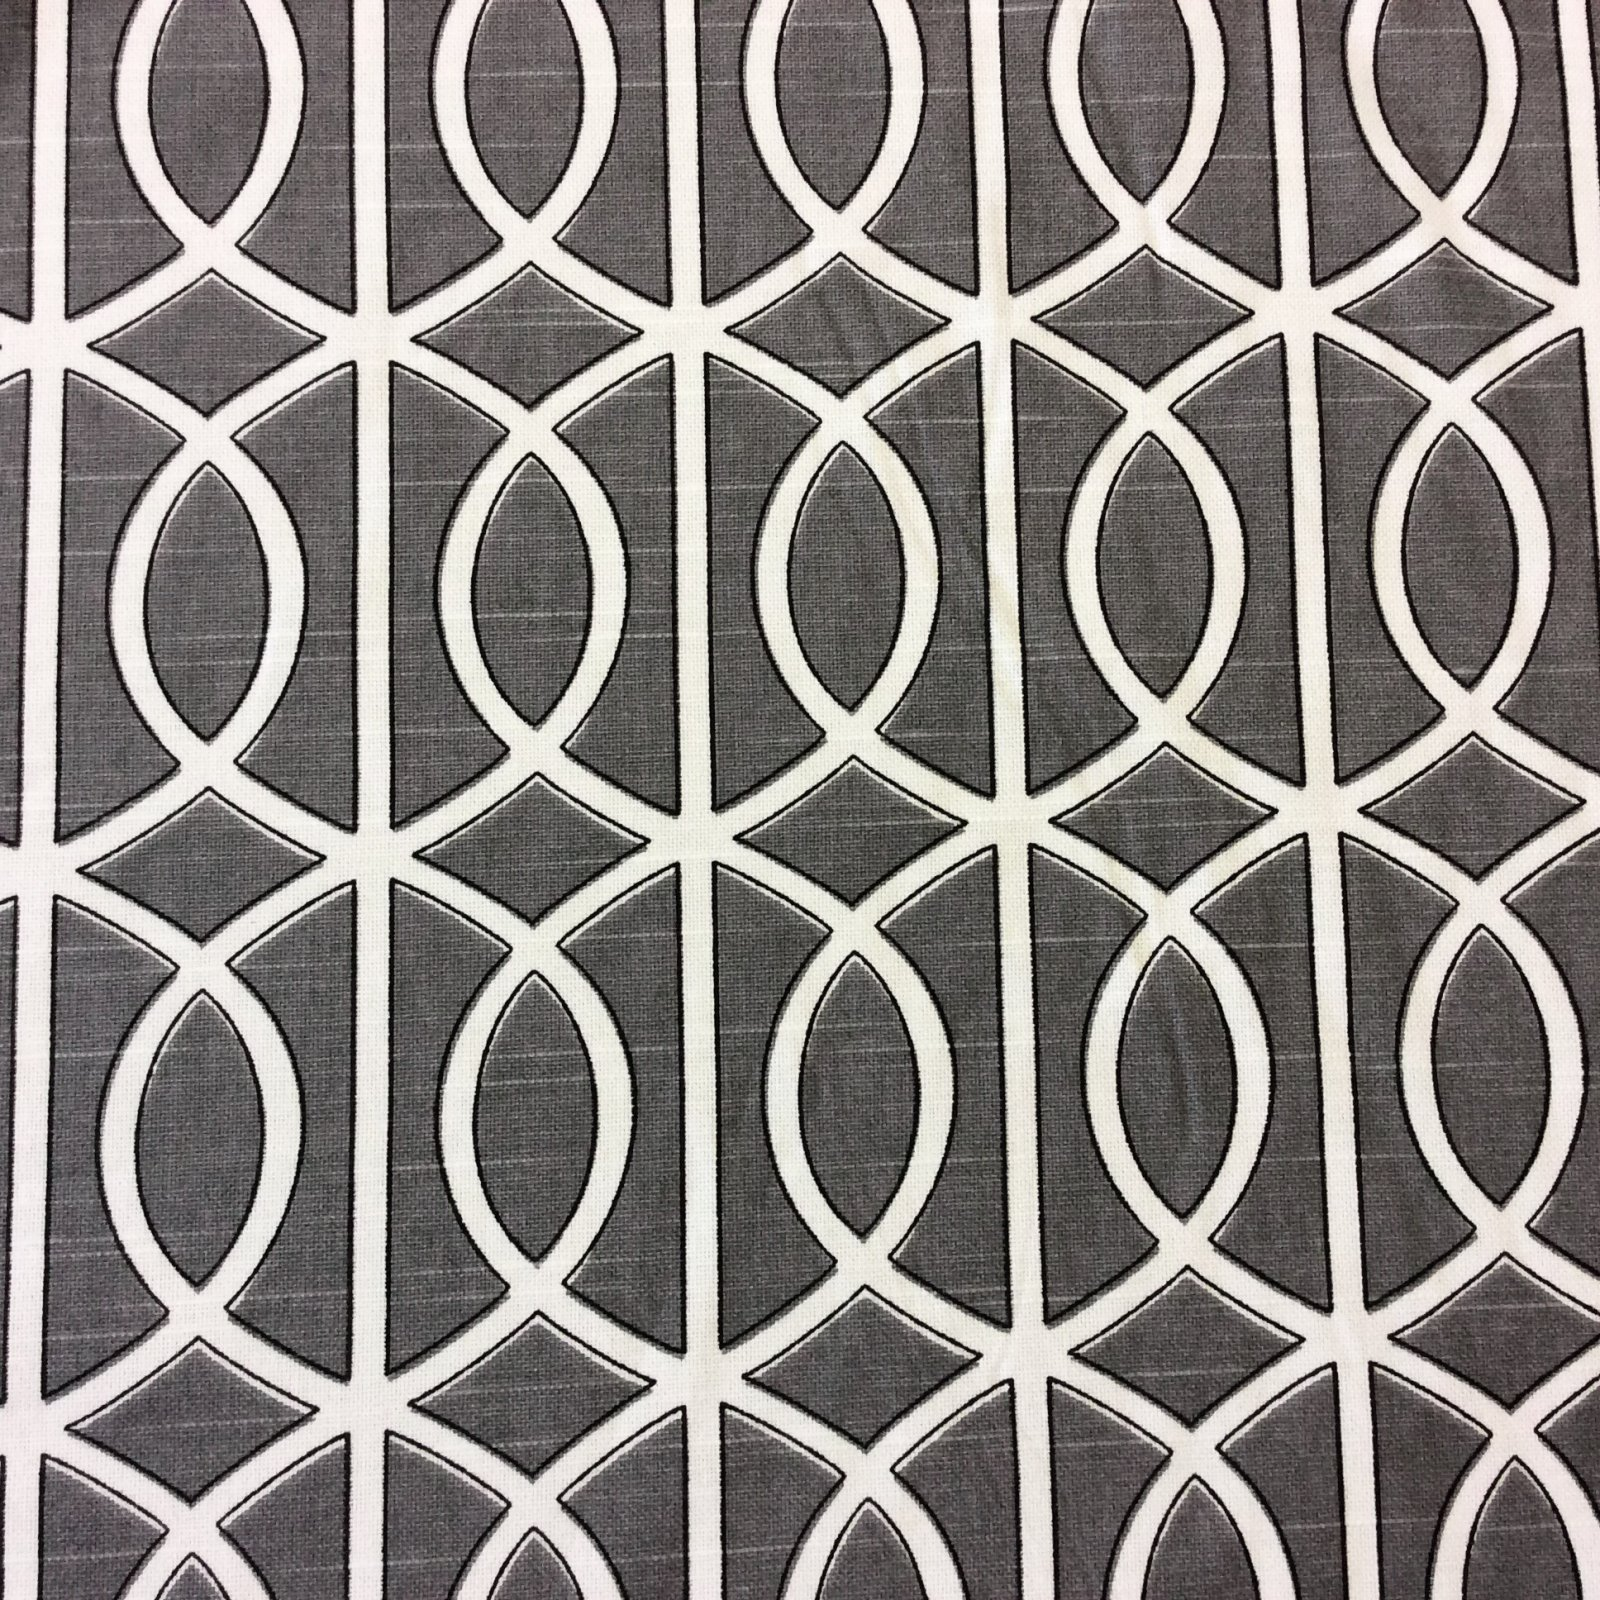 Modern Fabric Patterns Black And White Modern Seamless Mixed Lines